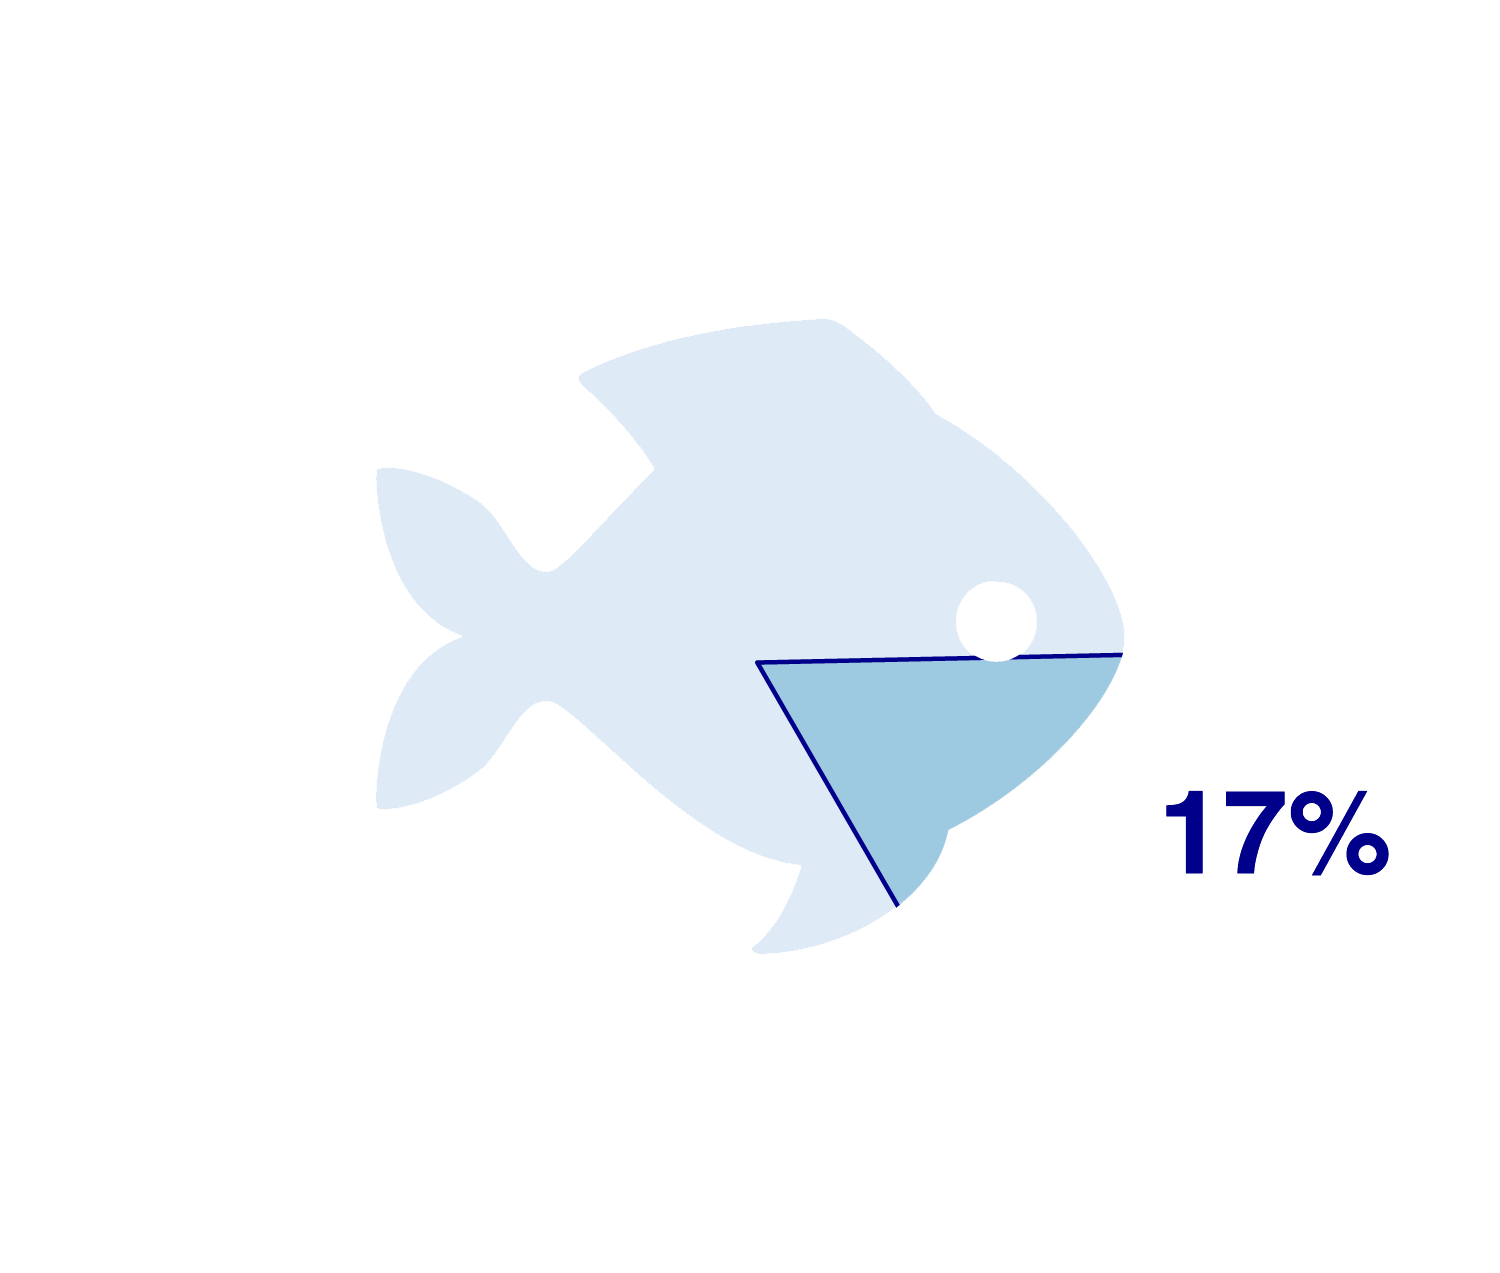 Common_dolphinfishfishHigh.png